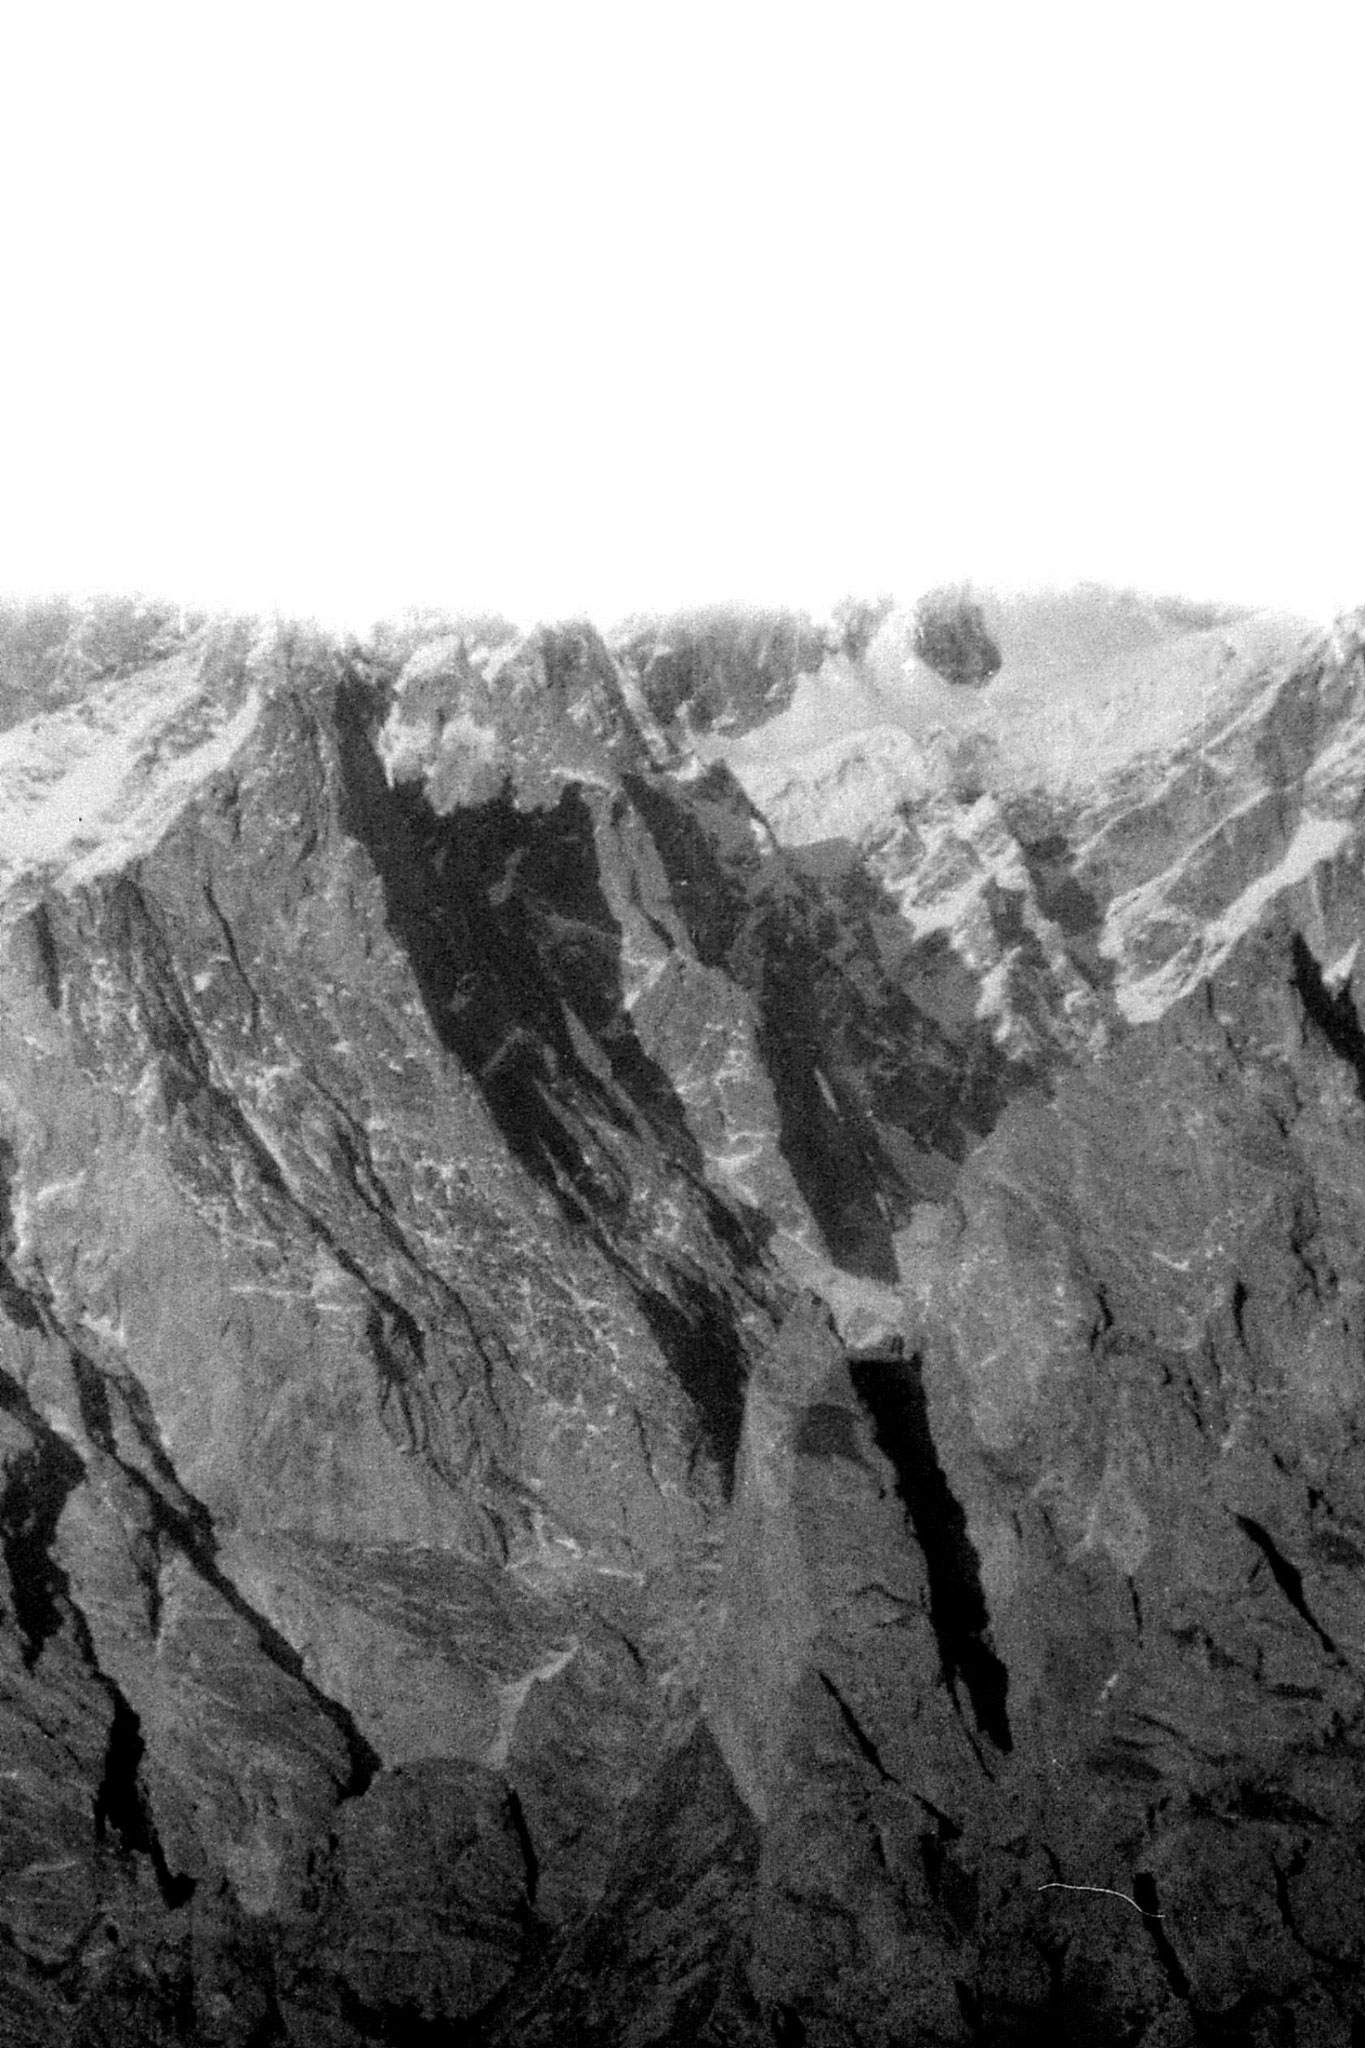 17/10/1989: 0: mountains above Hushe